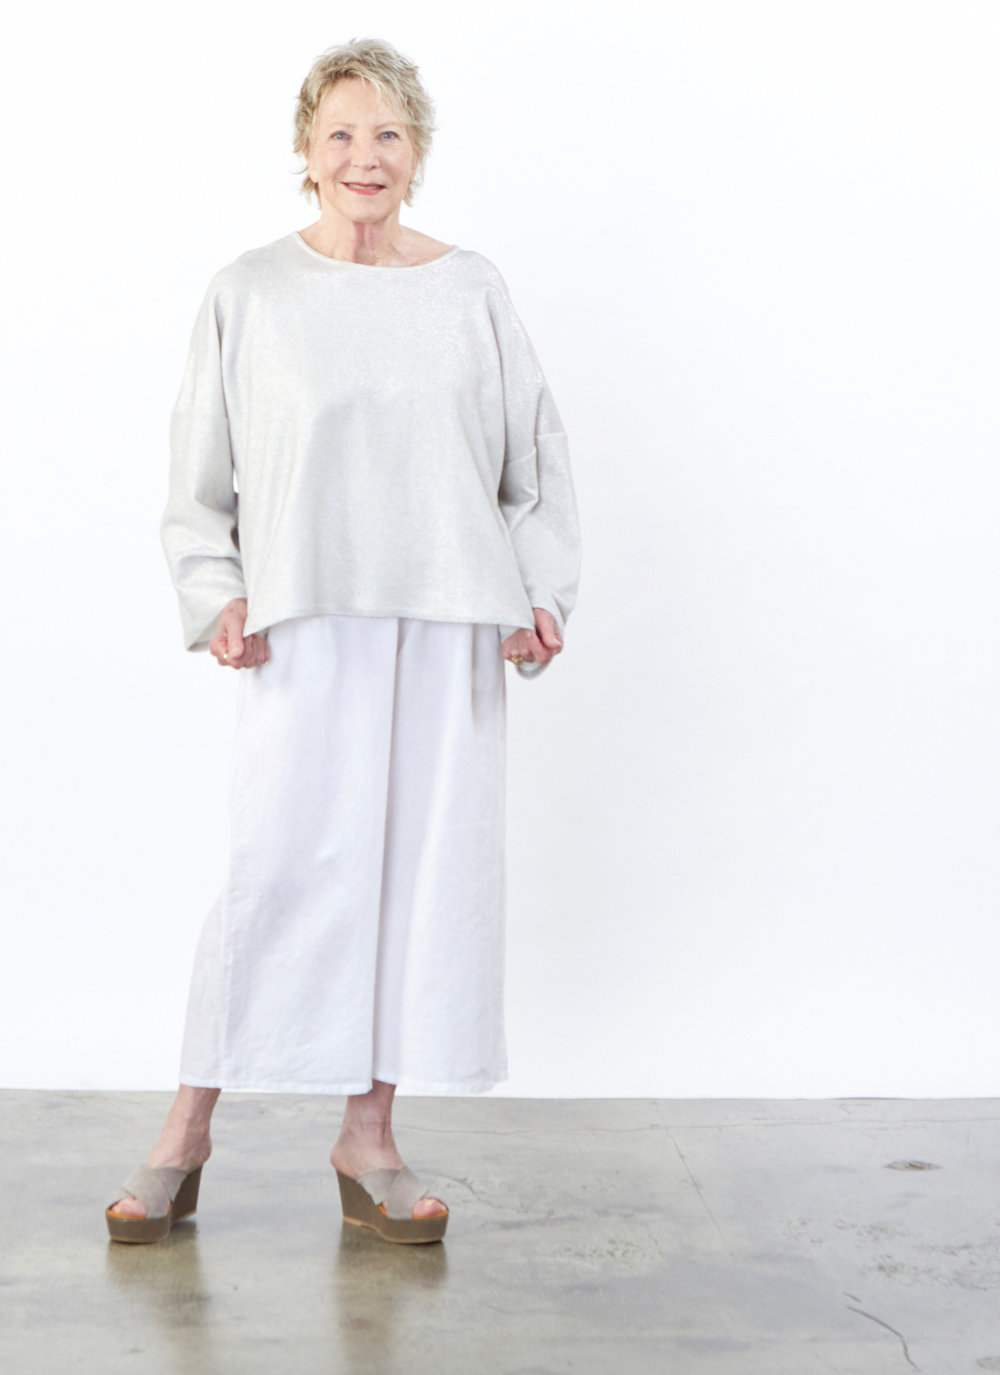 Play Shirt in Silver Ready for Newport Beach, Flood Pant in White Light Linen